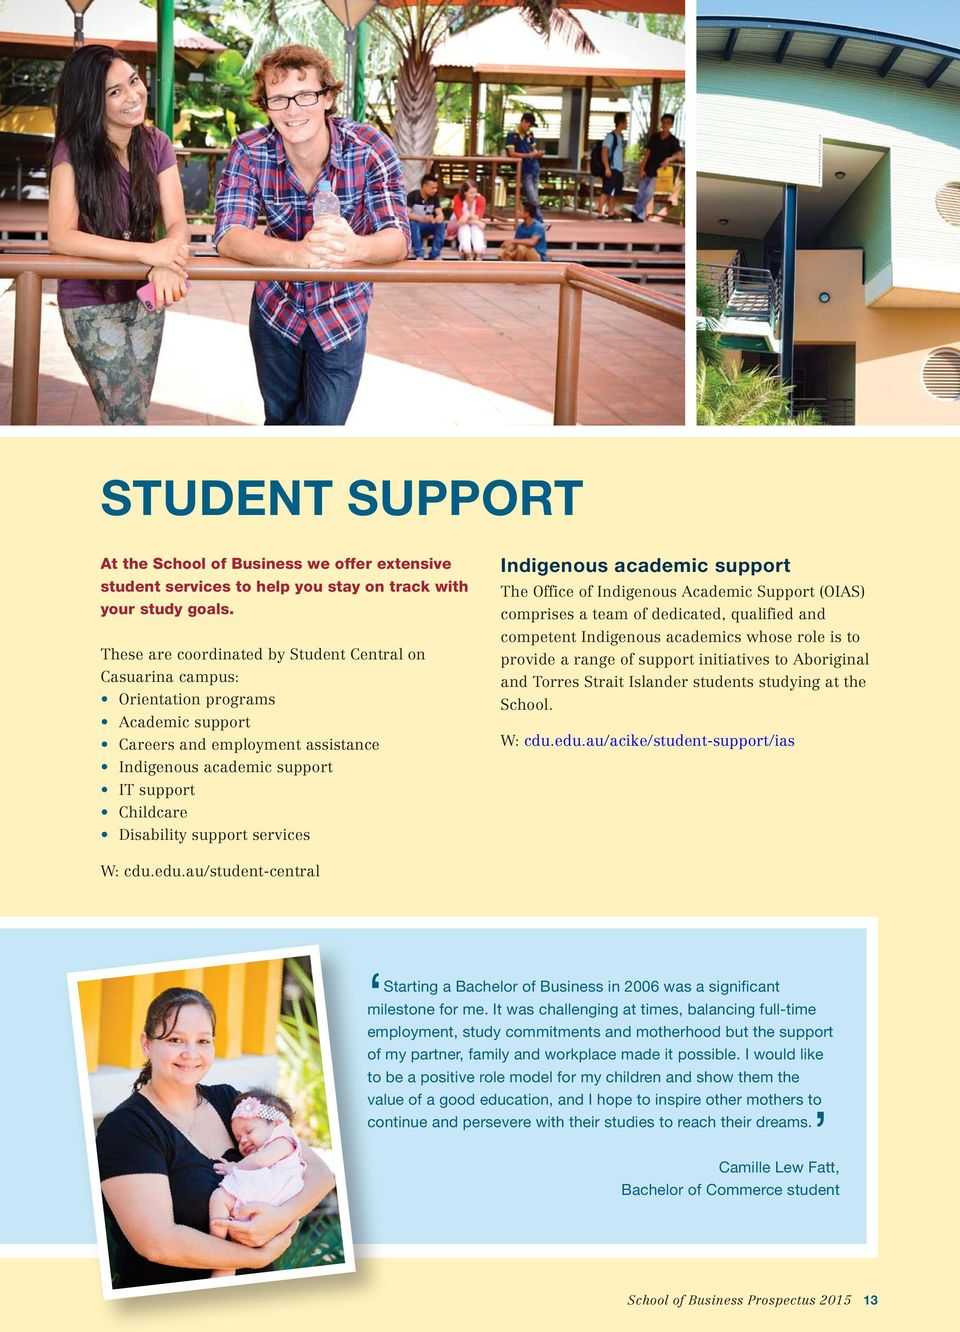 support services Indigenous academic support The Office of Indigenous Academic Support (OIAS) comprises a team of dedicated, qualified and competent Indigenous academics whose role is to provide a